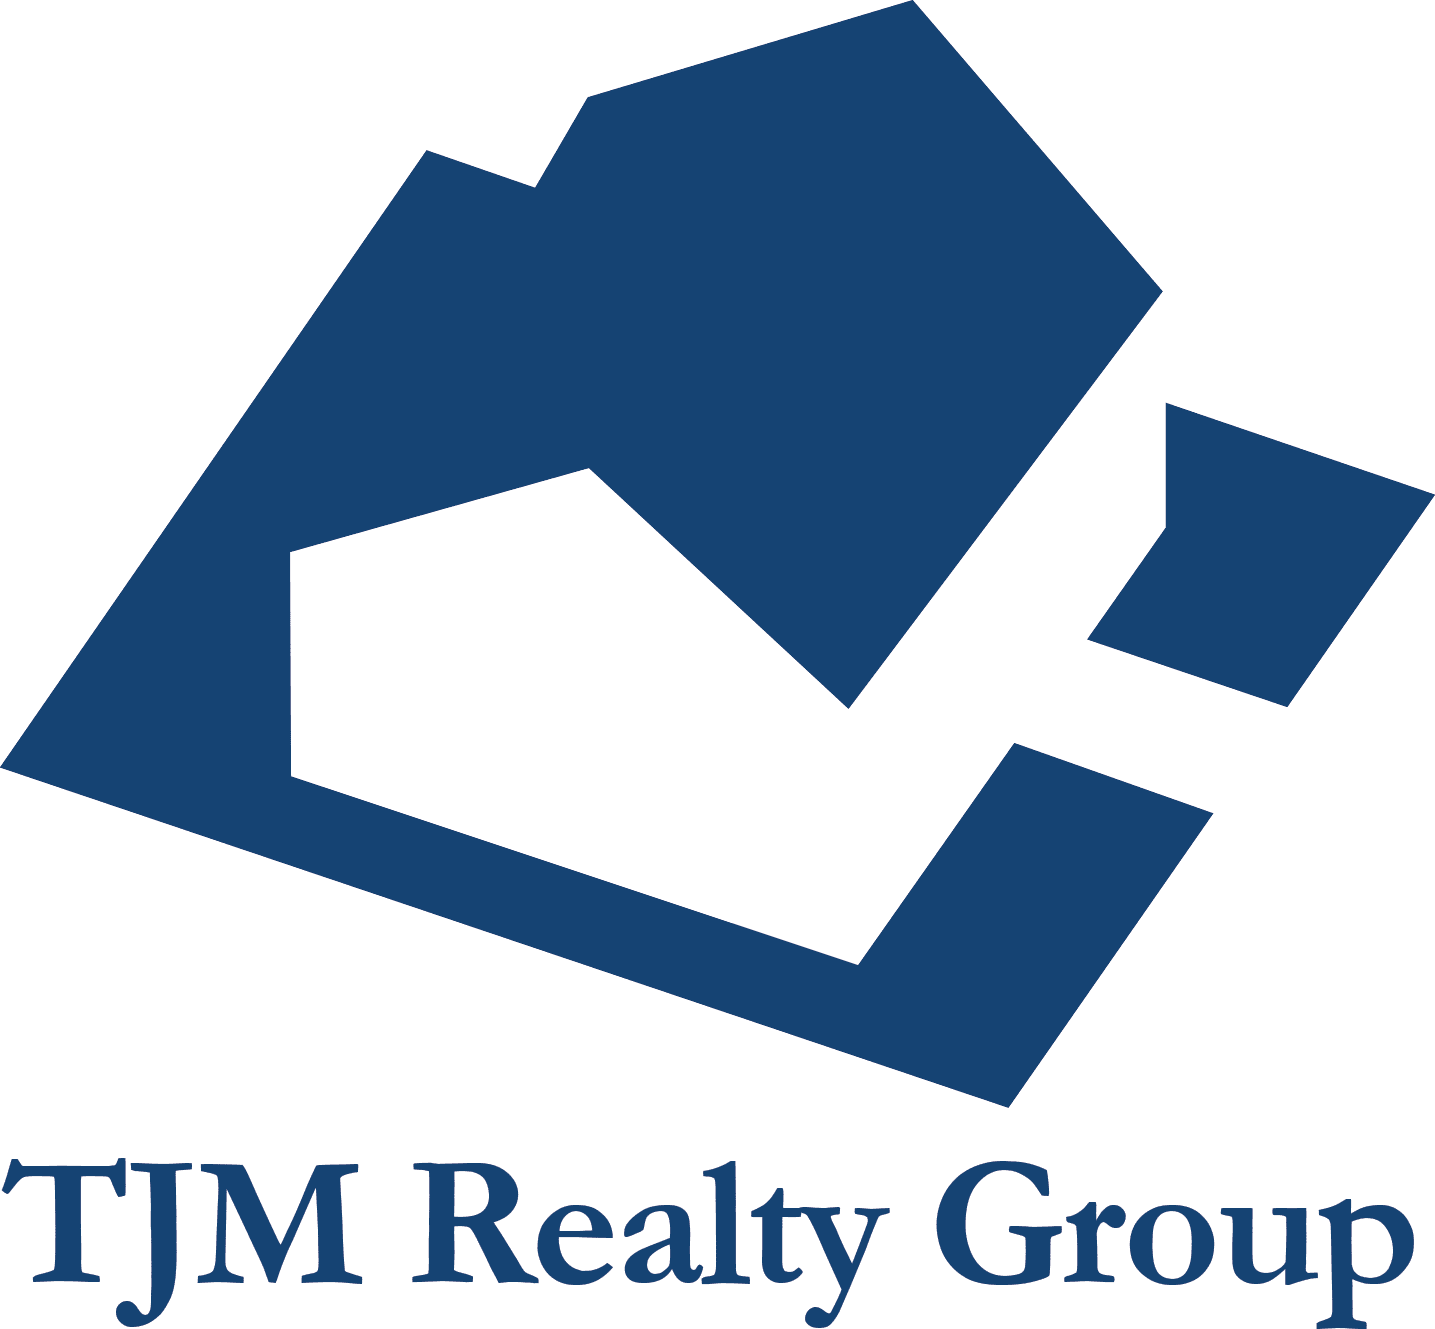 TJMRealtyGroup